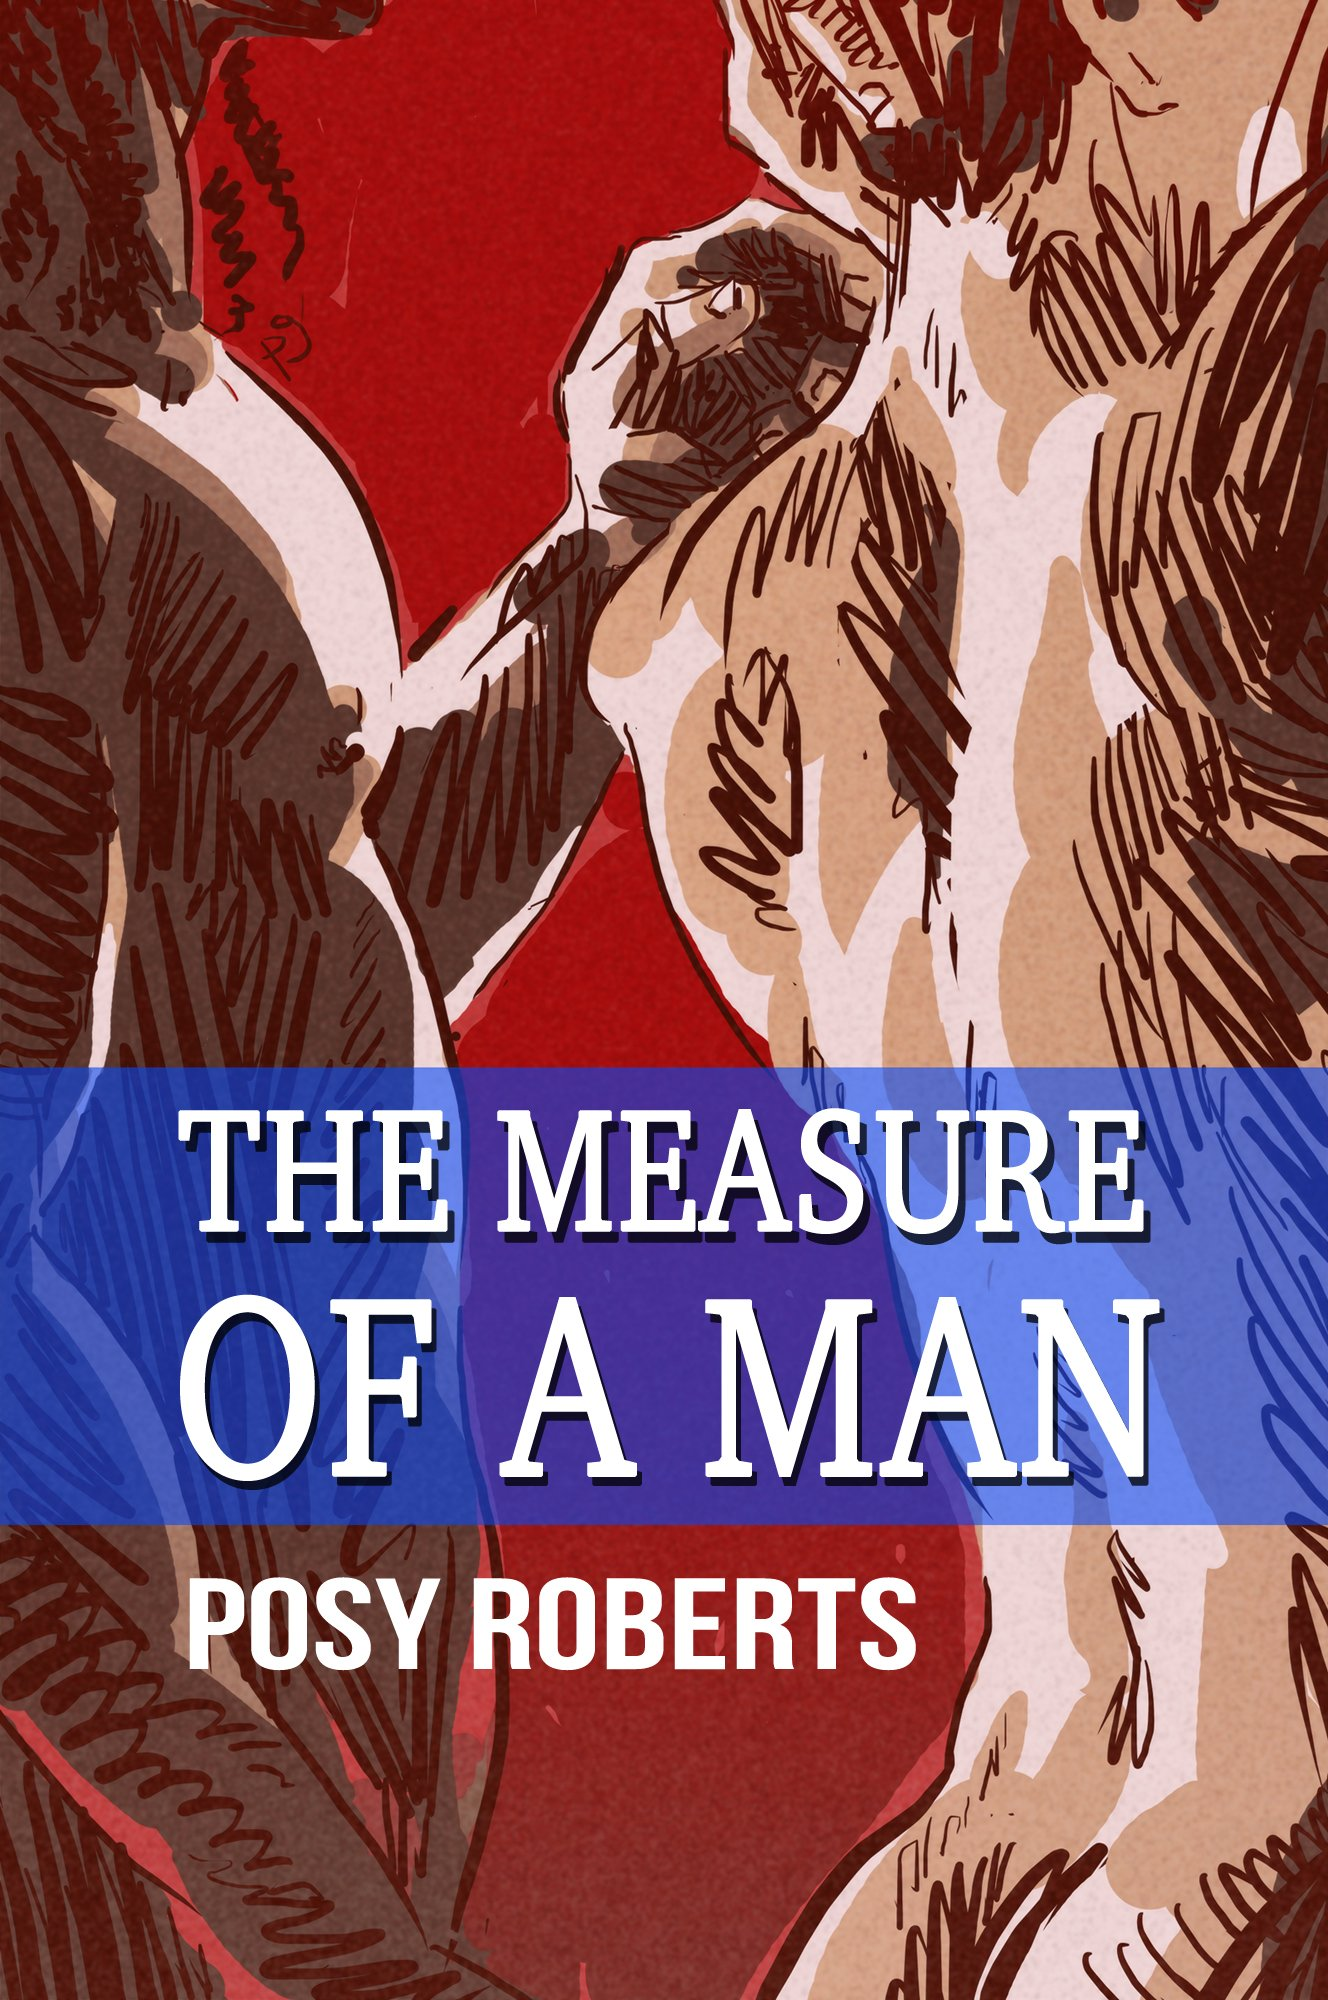 MeasureMan_Posy_1328_2000